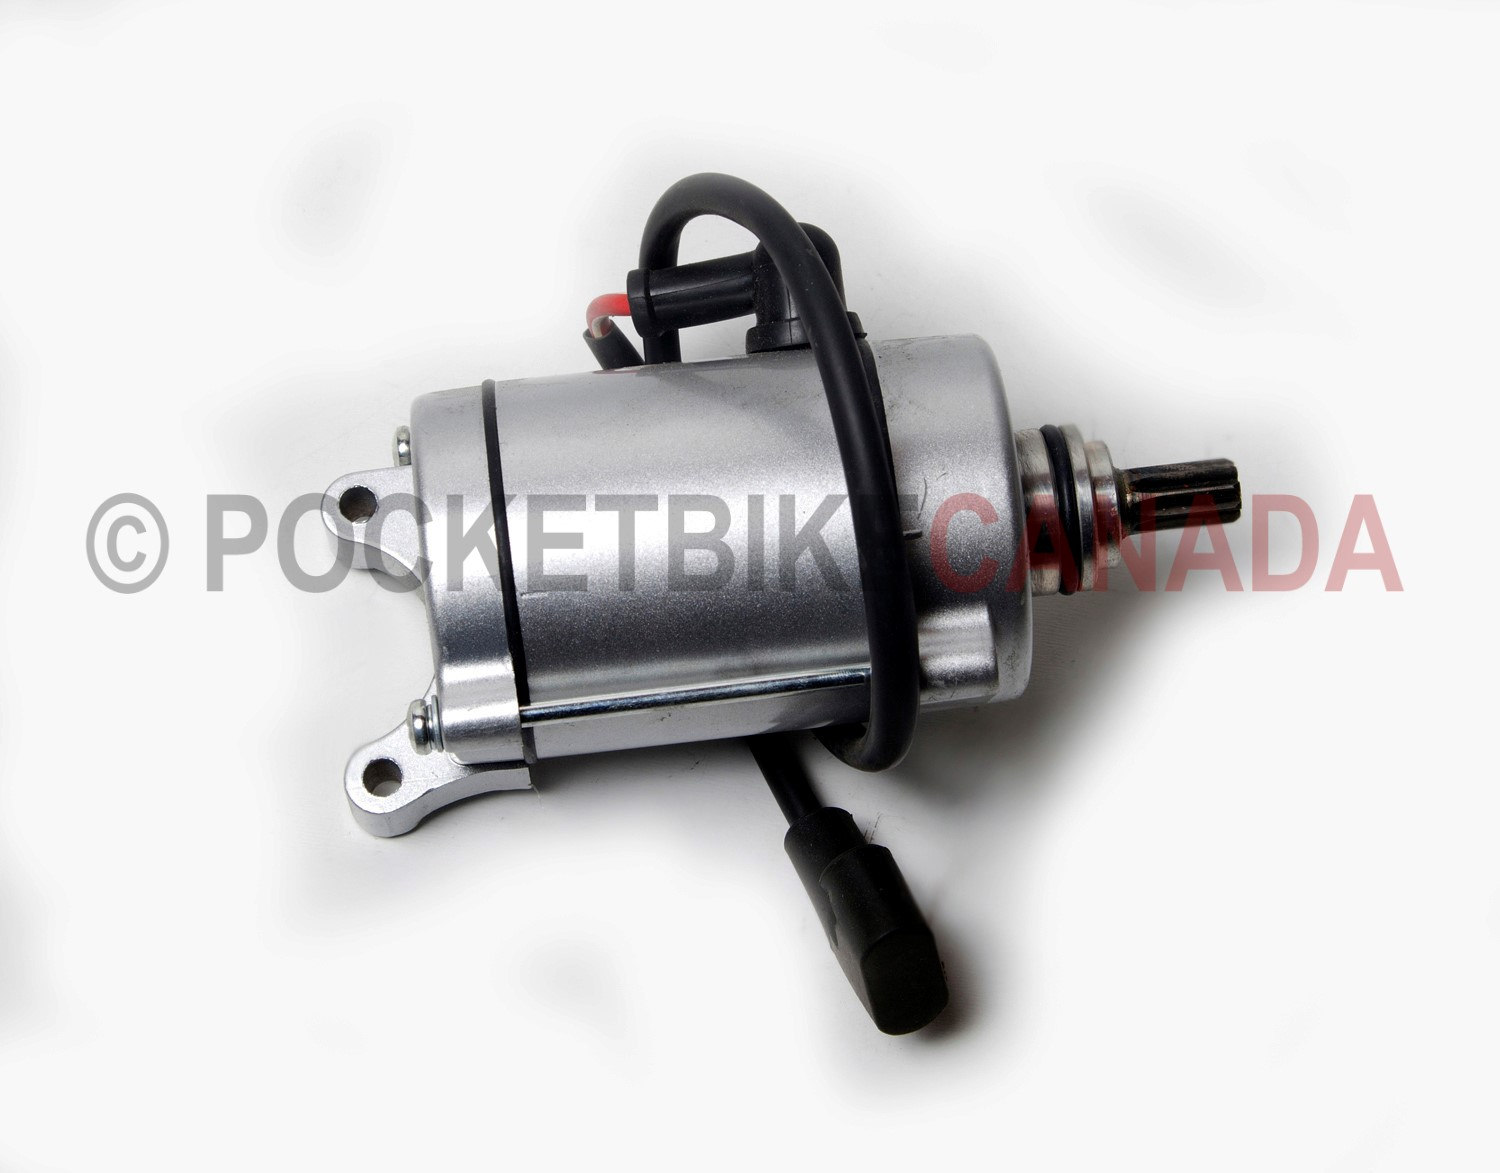 Pocket bike canada bikes parts starter motor for for How to make an electric bike with a starter motor